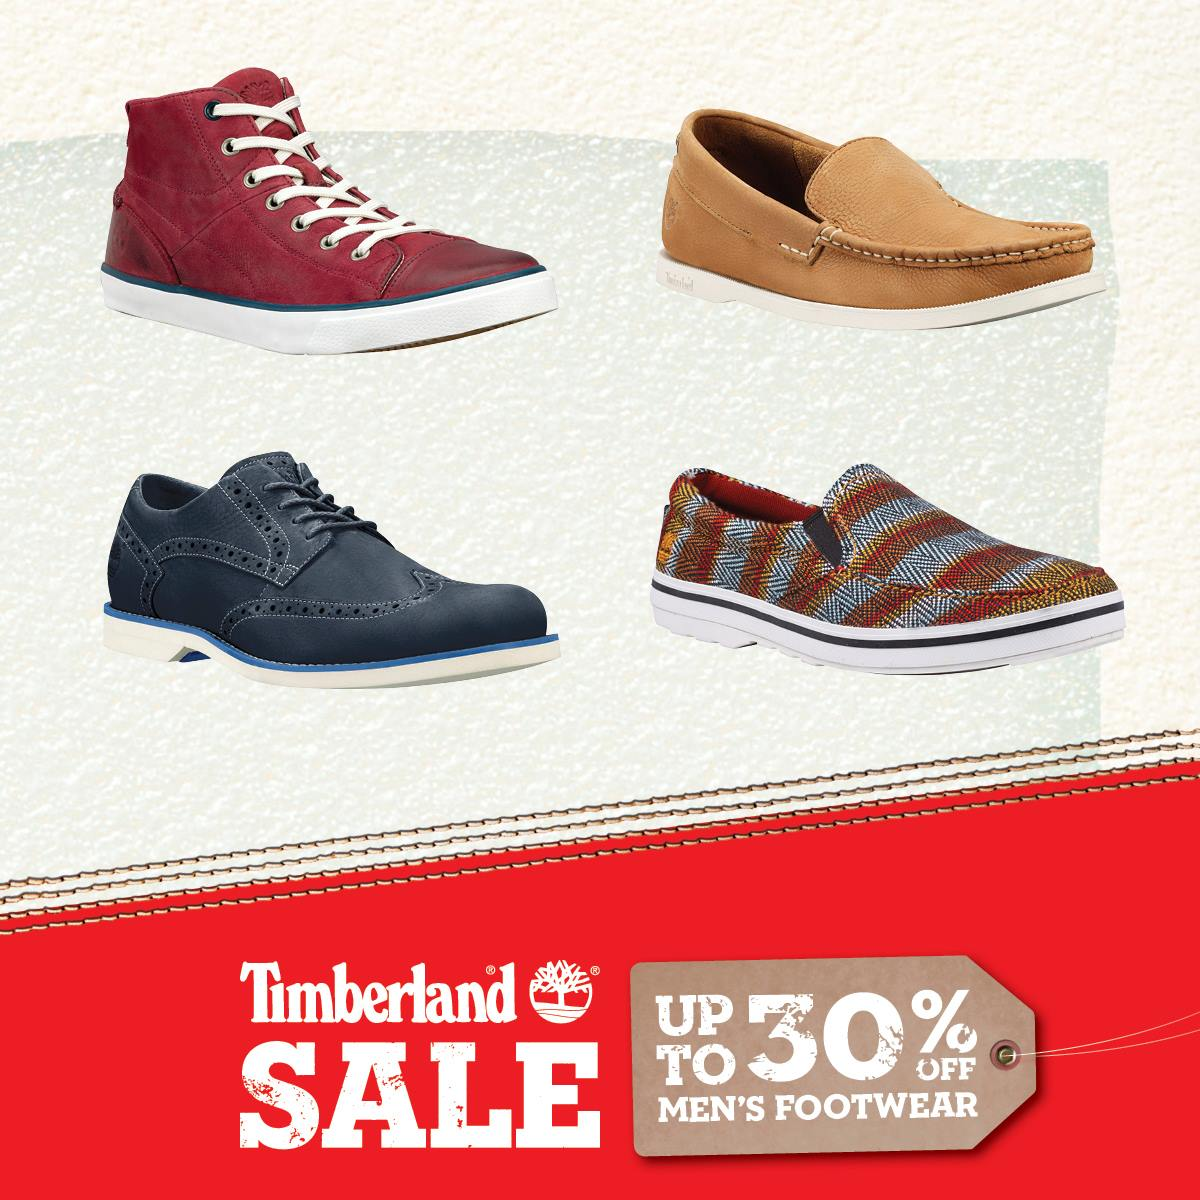 Timberland Launches 30% Off Men's Footwear In Line With GSS 2014